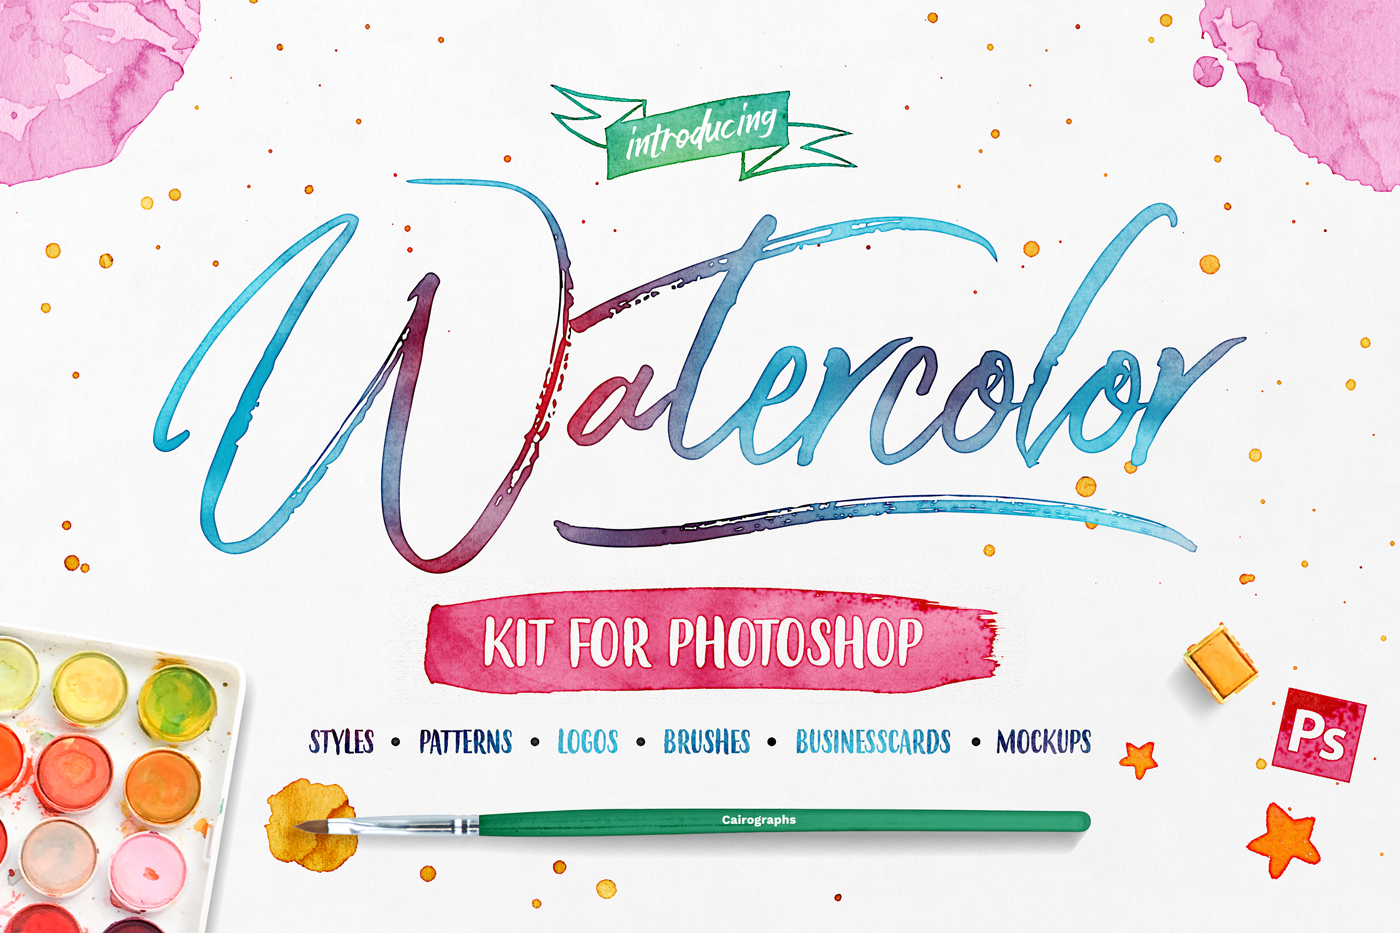 Watercolor Kit For Photoshop example image 1